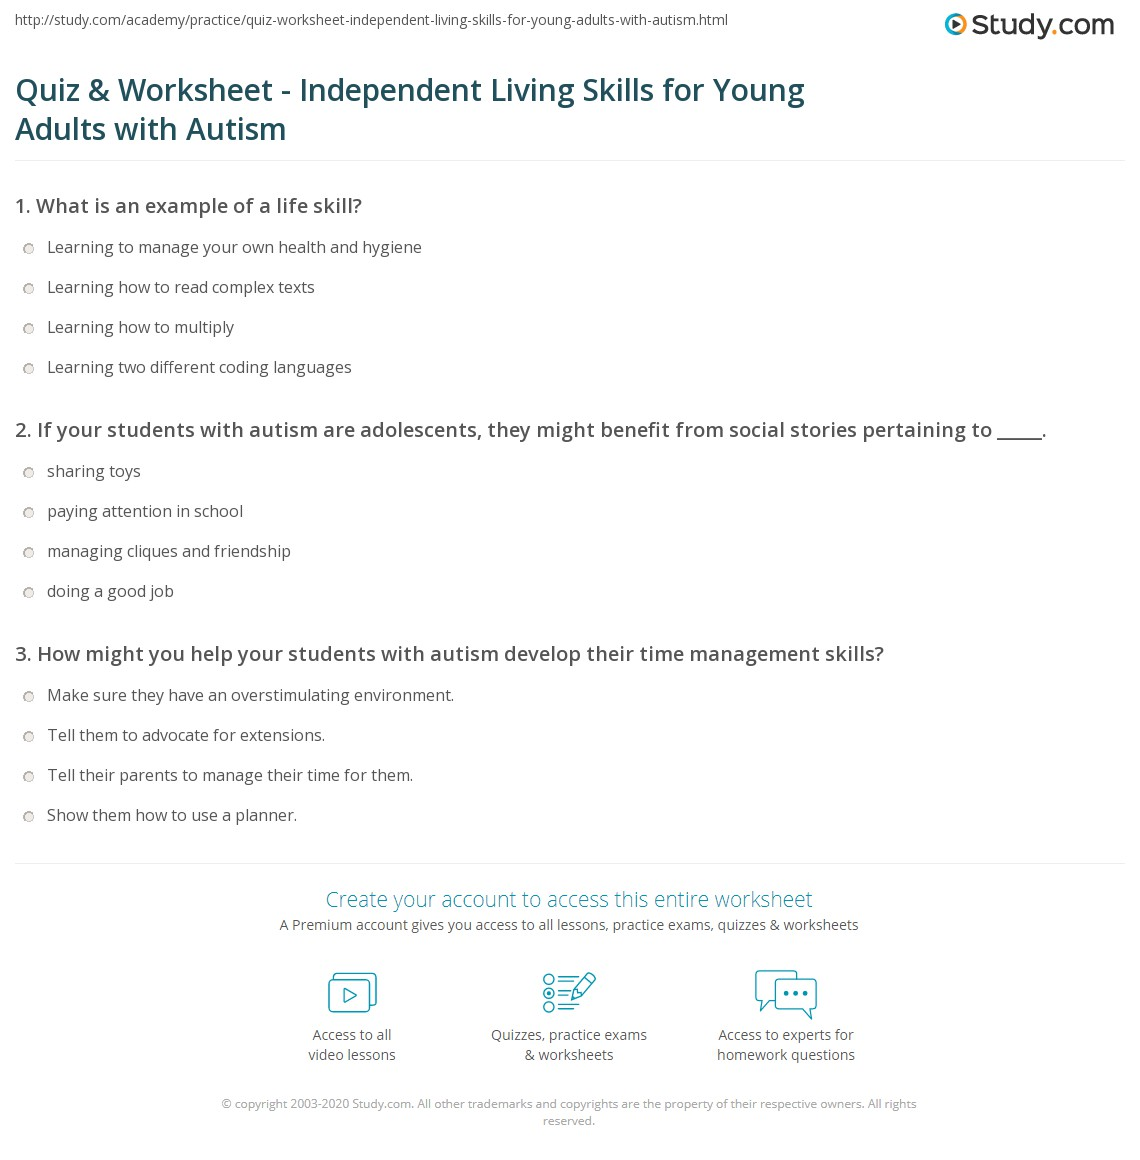 photograph relating to Life Skills Printable Worksheets for Adults referred to as Quiz Worksheet - Different Dwelling Abilities for Younger